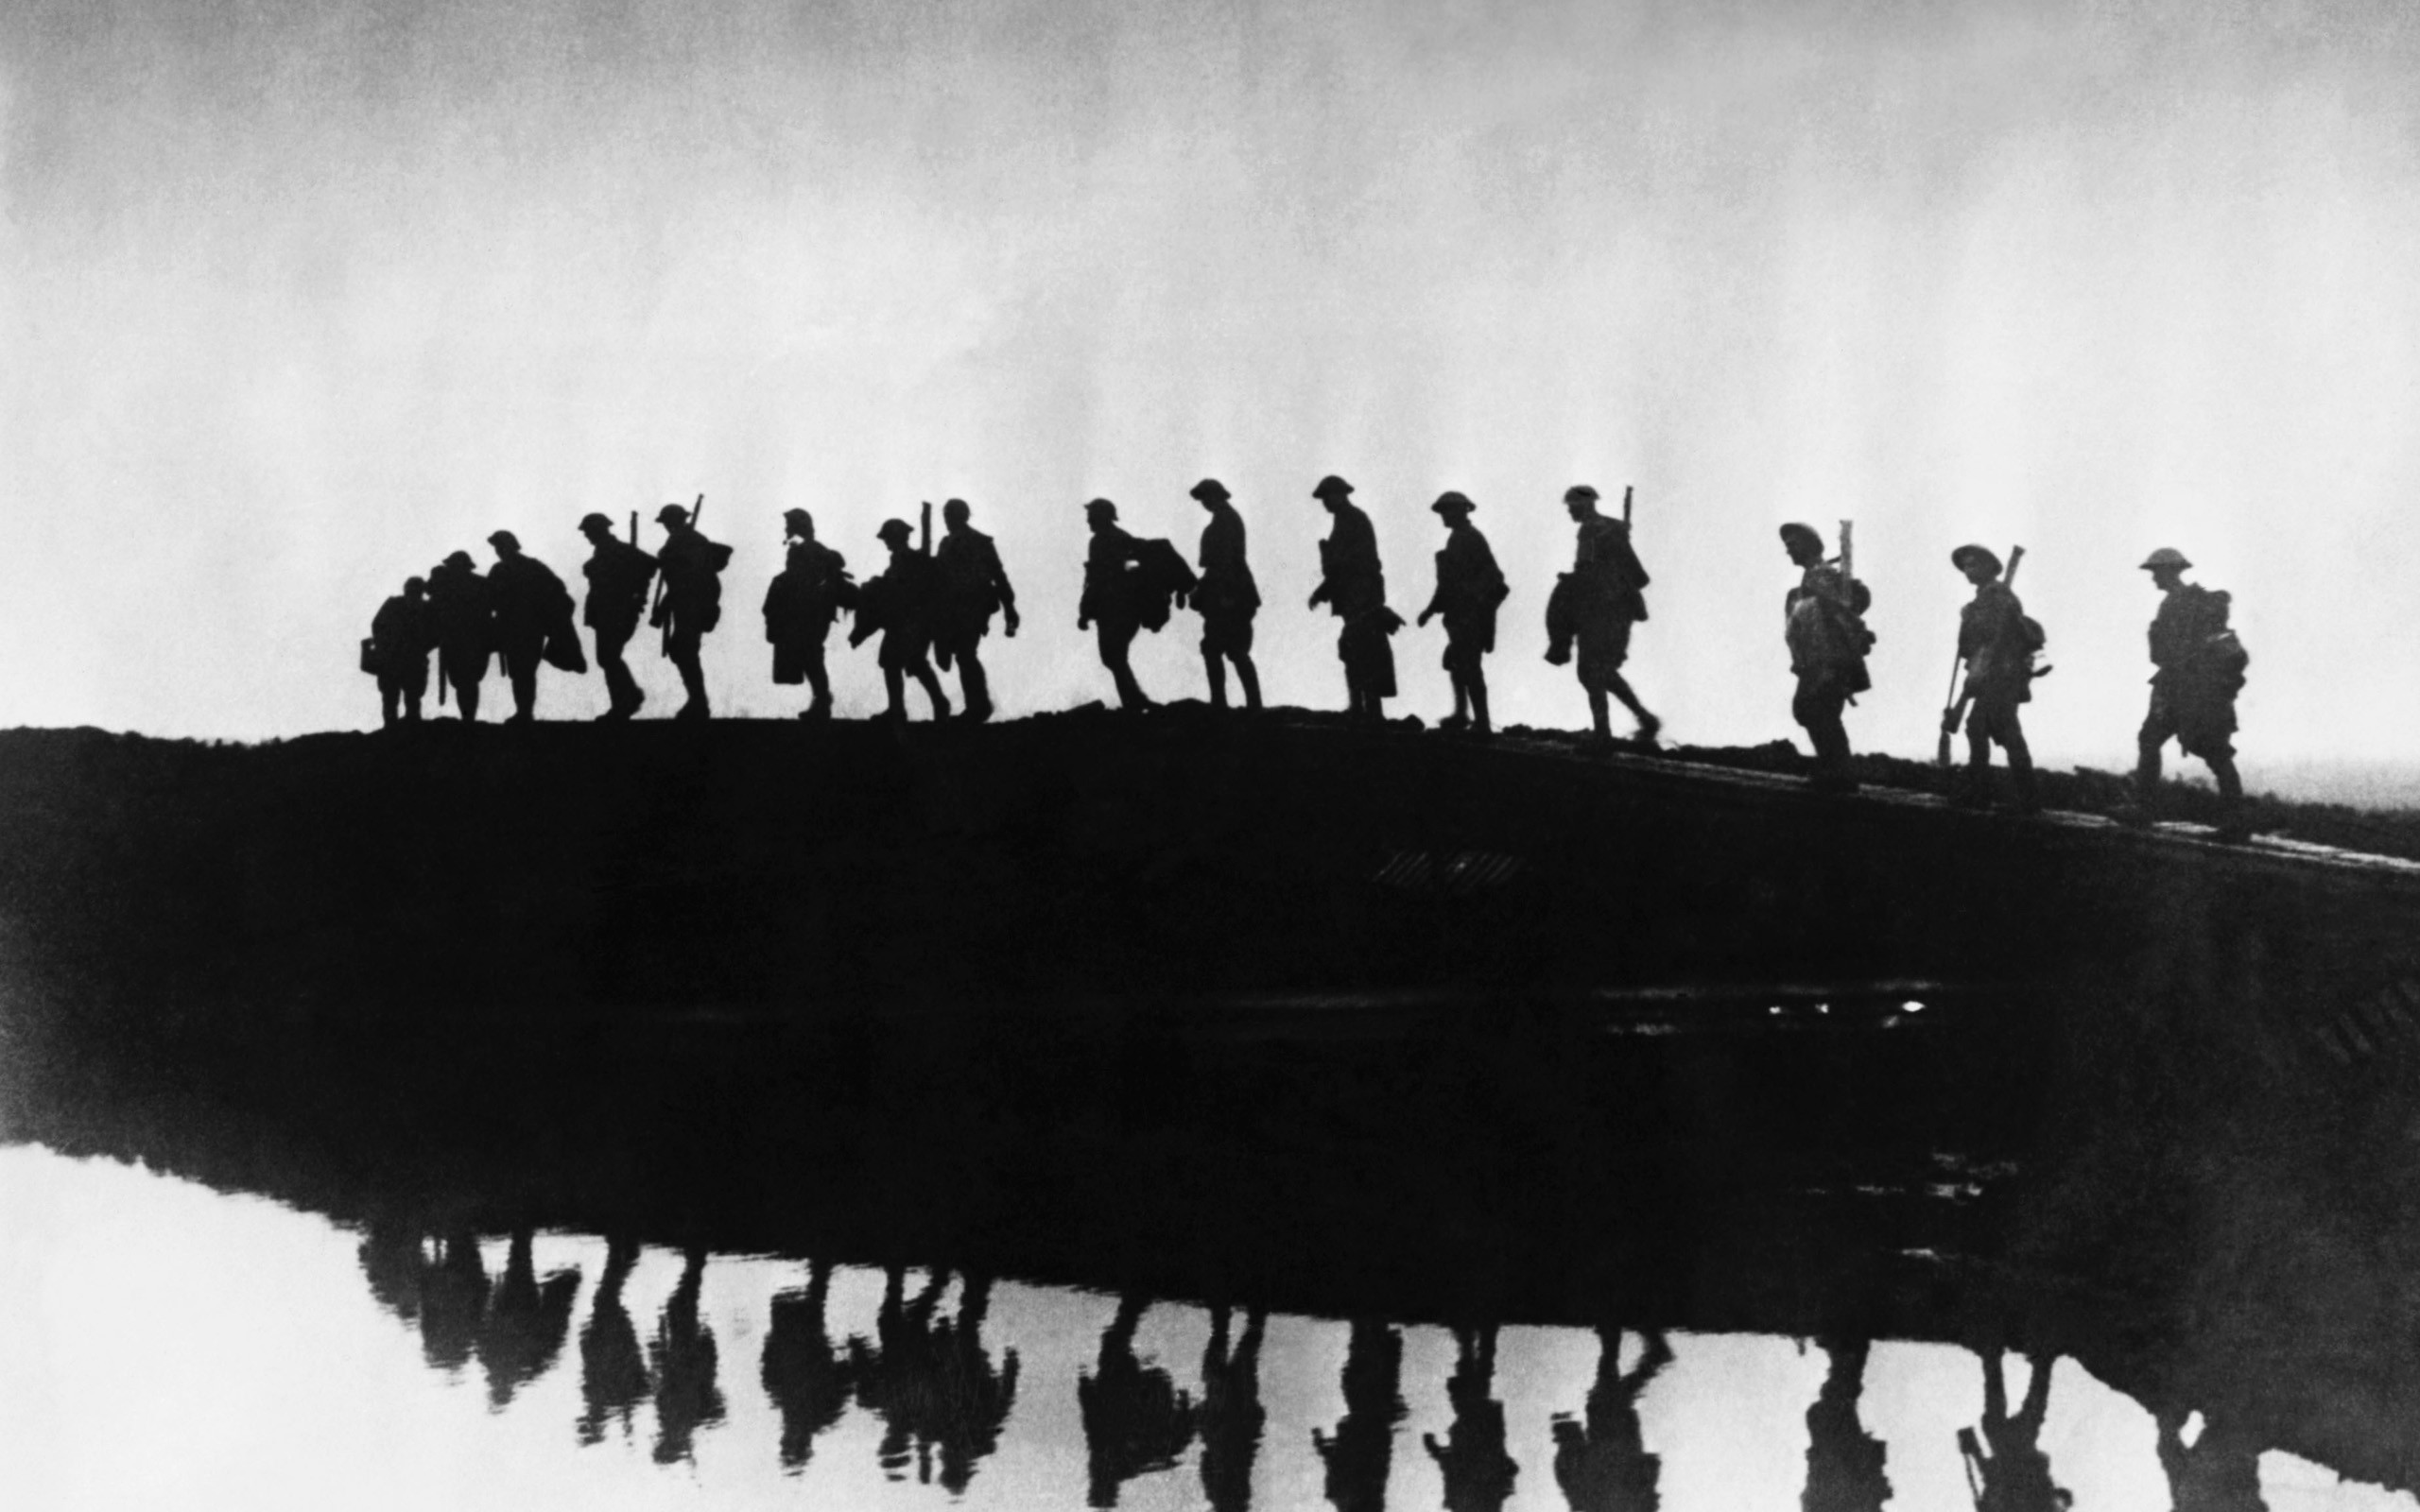 World war 1 wallpaper 58 images - Best war wallpapers hd ...